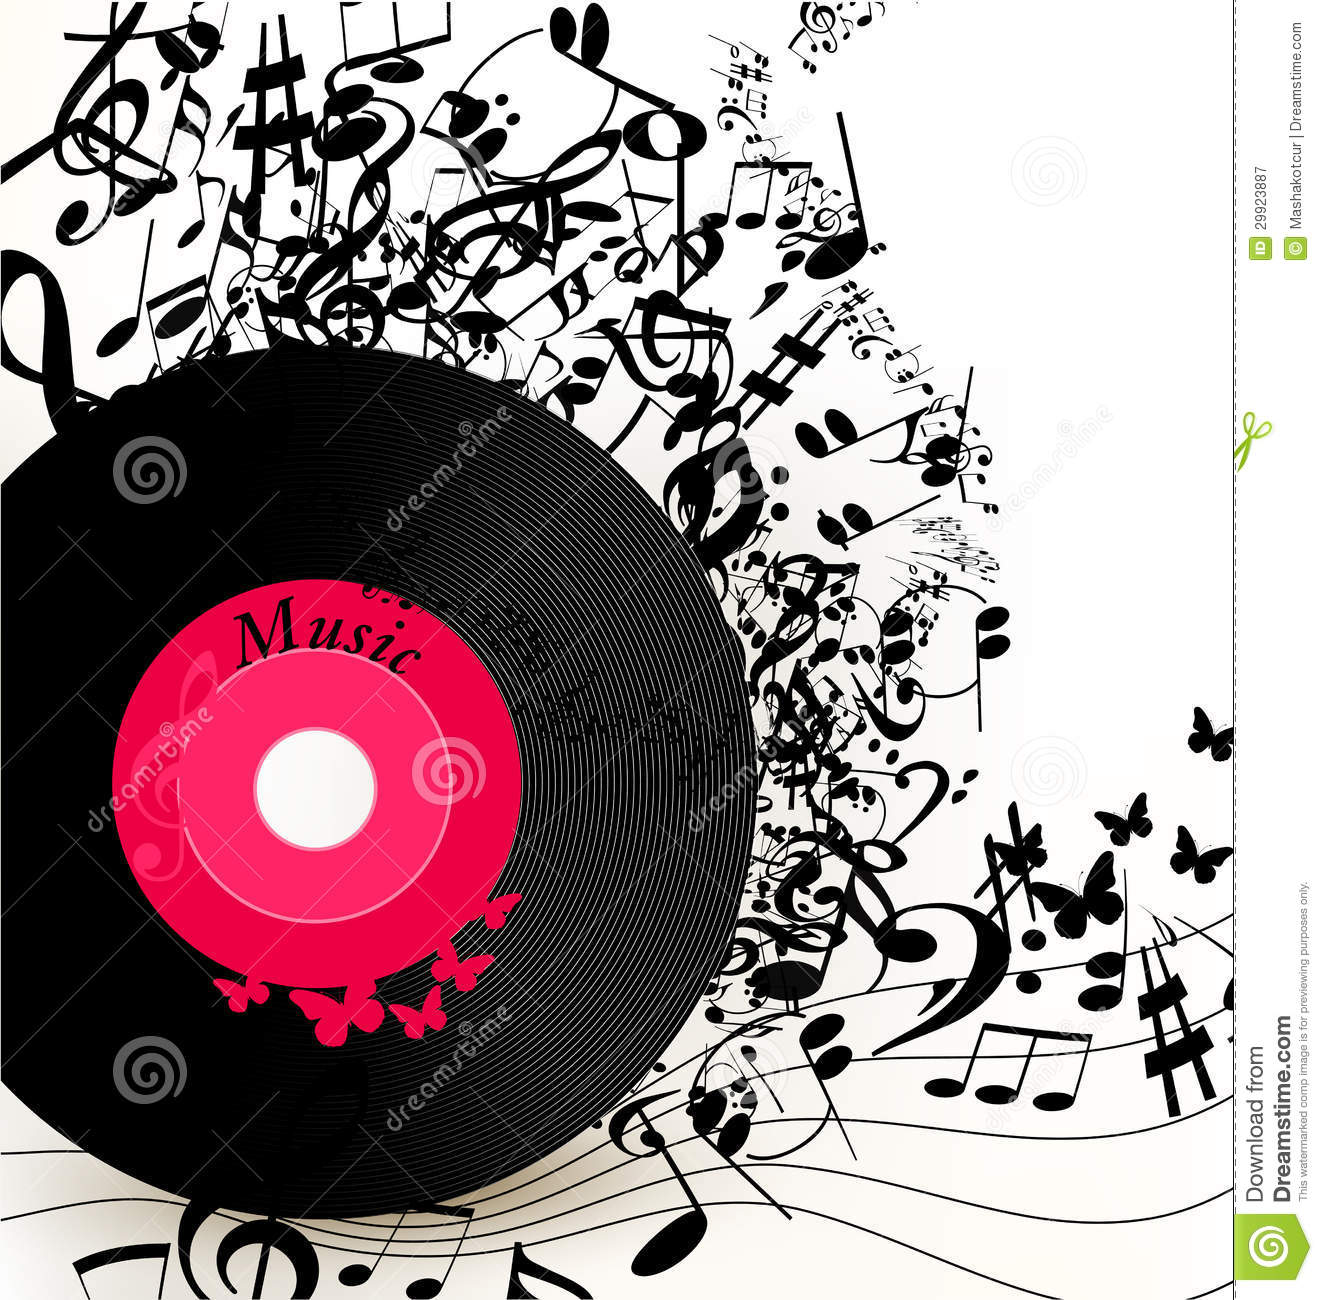 Musical Vinyl Wallpaper: Abstract Music Background With Vinyl Record And Notes